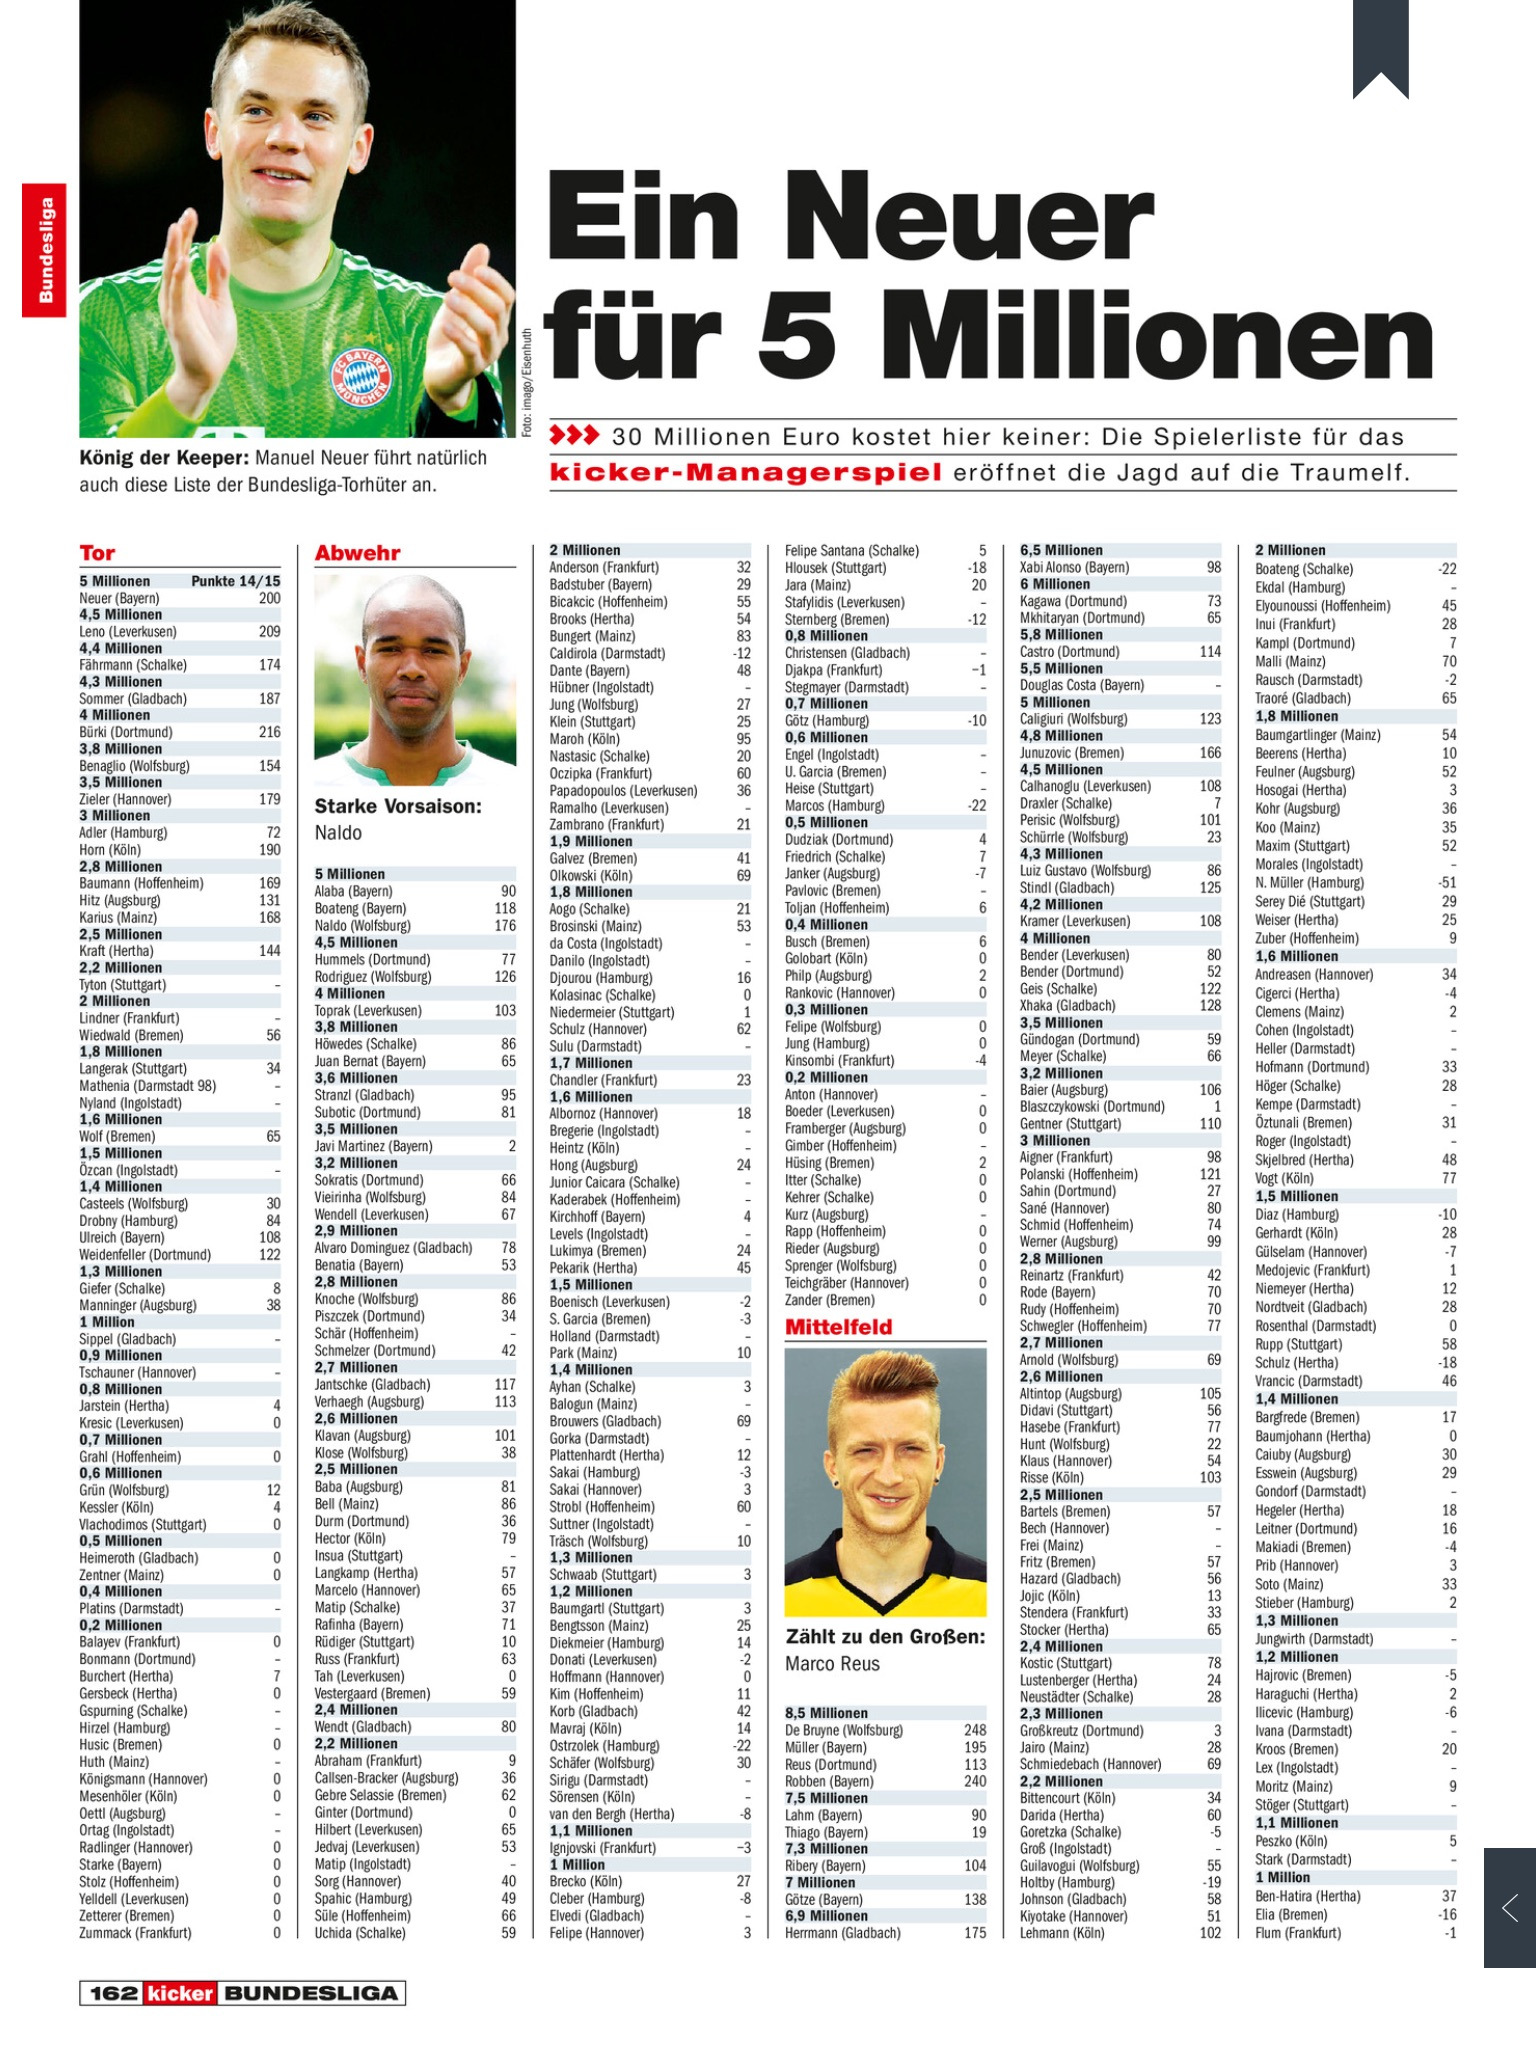 Kicker Manager Spielerliste